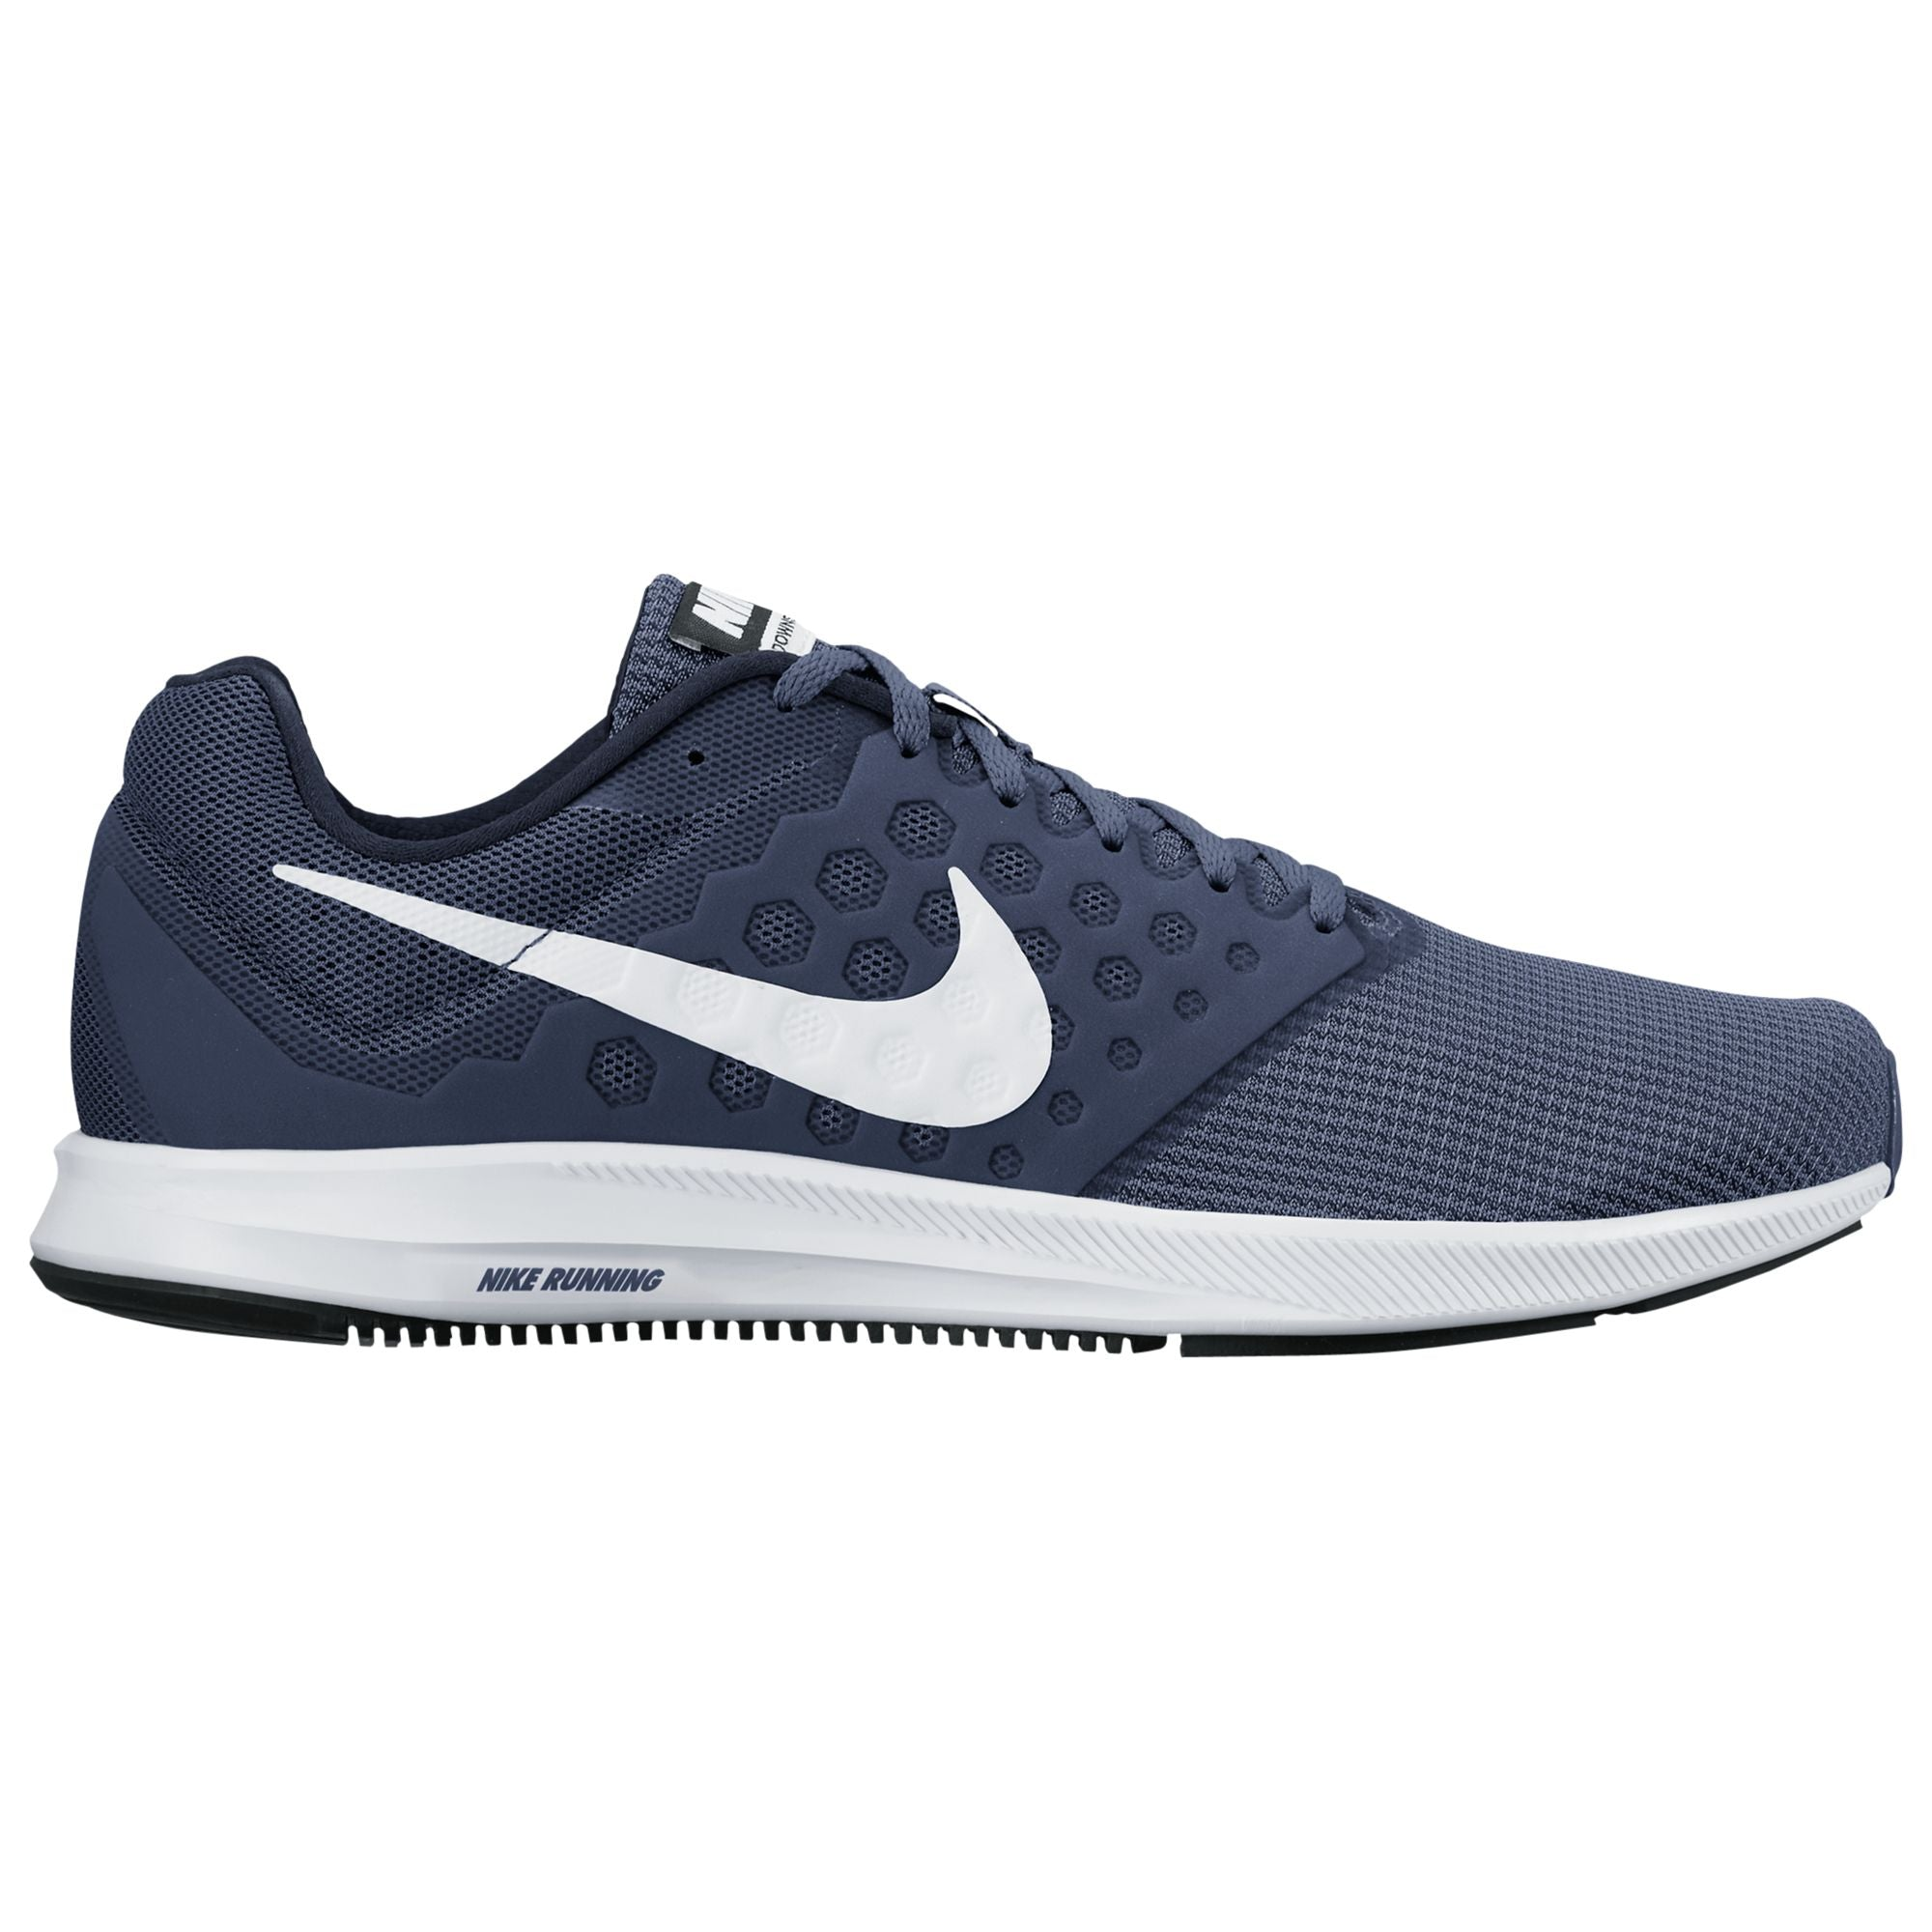 Nike Downshifter 7 Mens Running